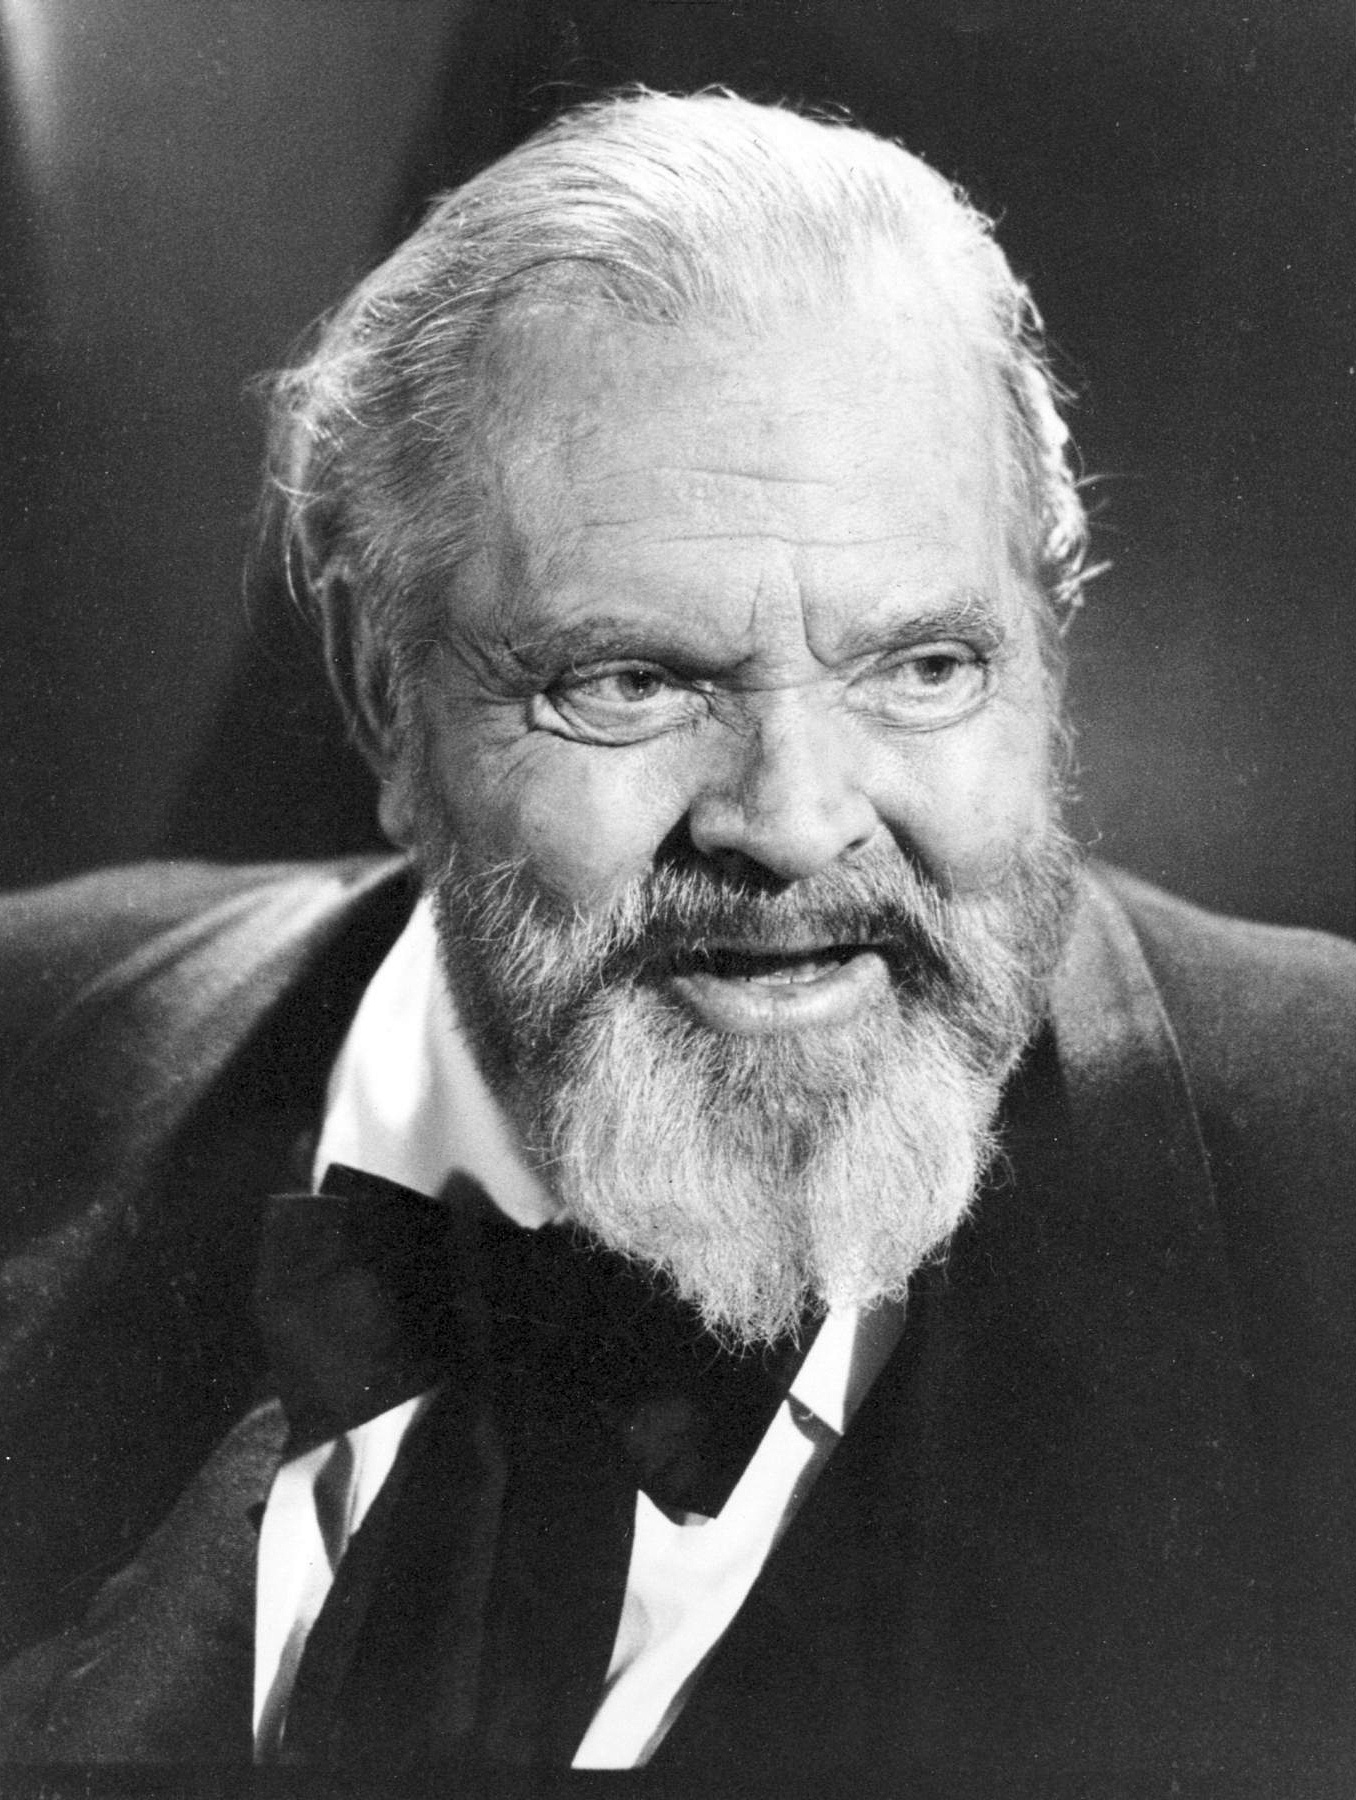 orson welles mr arkadin